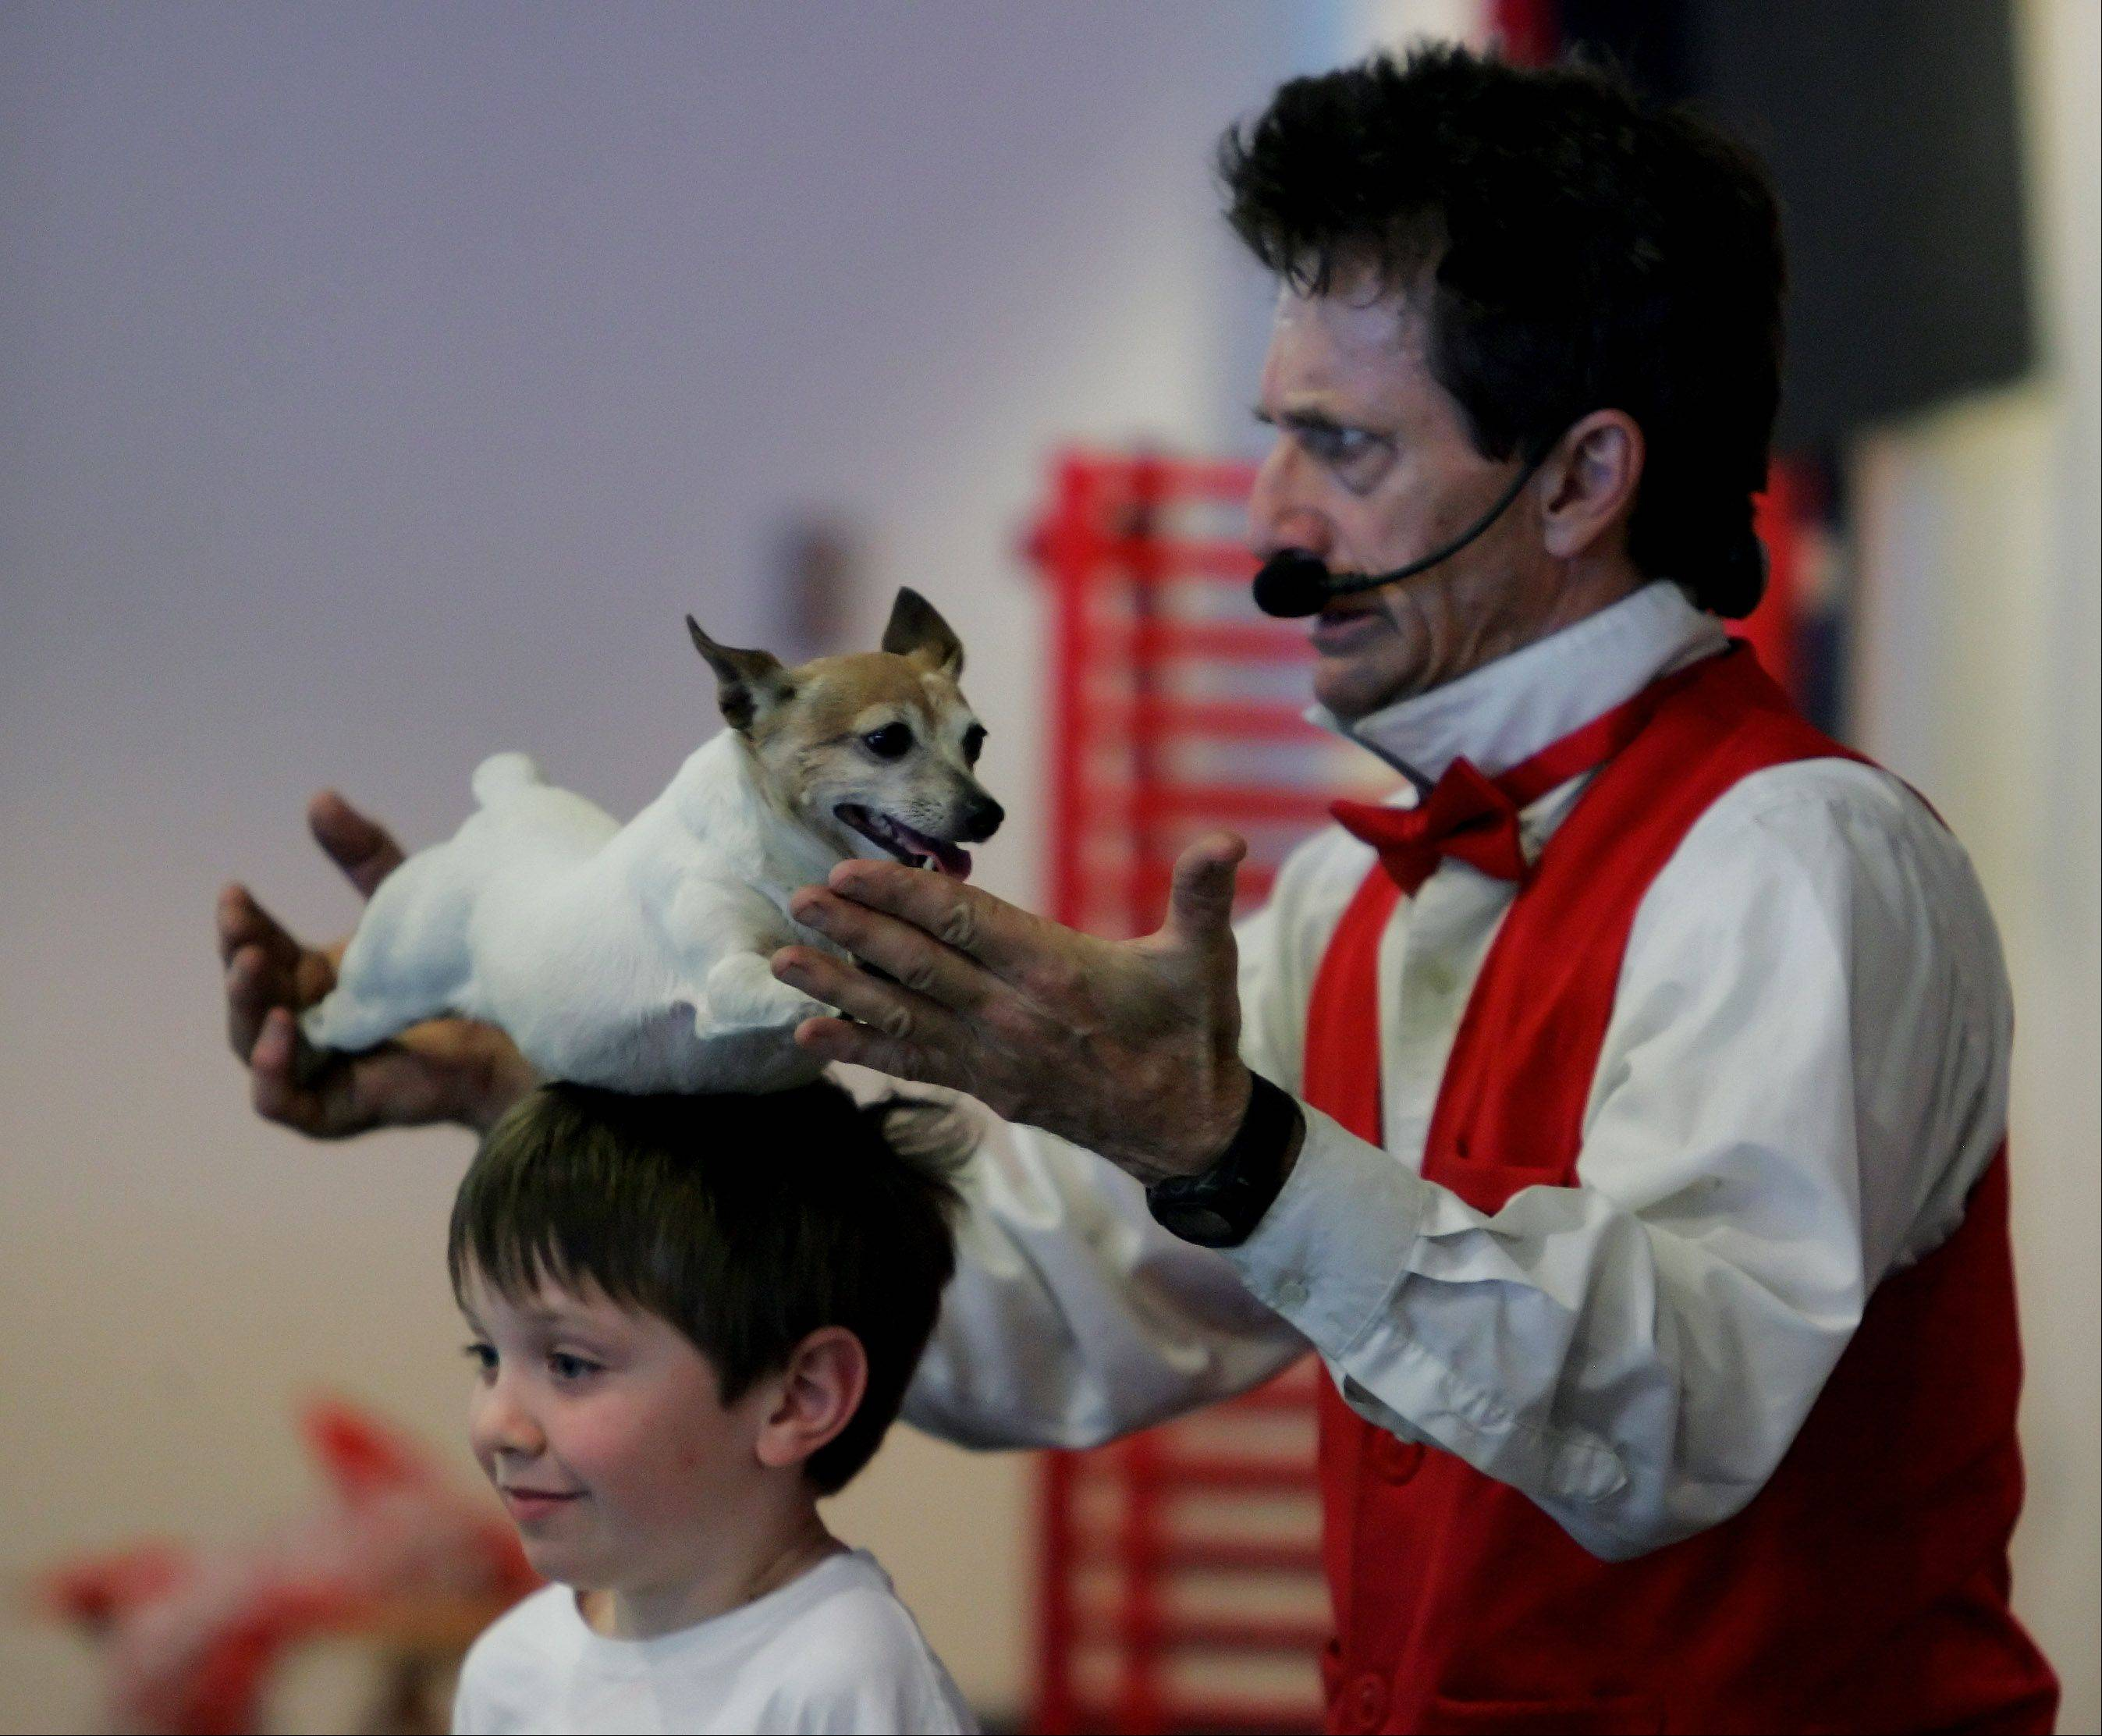 Johnny Peers balances a dog on the head of eight-year-old Ted Doyle, of Lombard, during the Johnny Peers & The Muttville Comix on the final day of the Chicagoland Family Pet Expo Sunday at Arlington Park Racecourse in Arlington Heights.